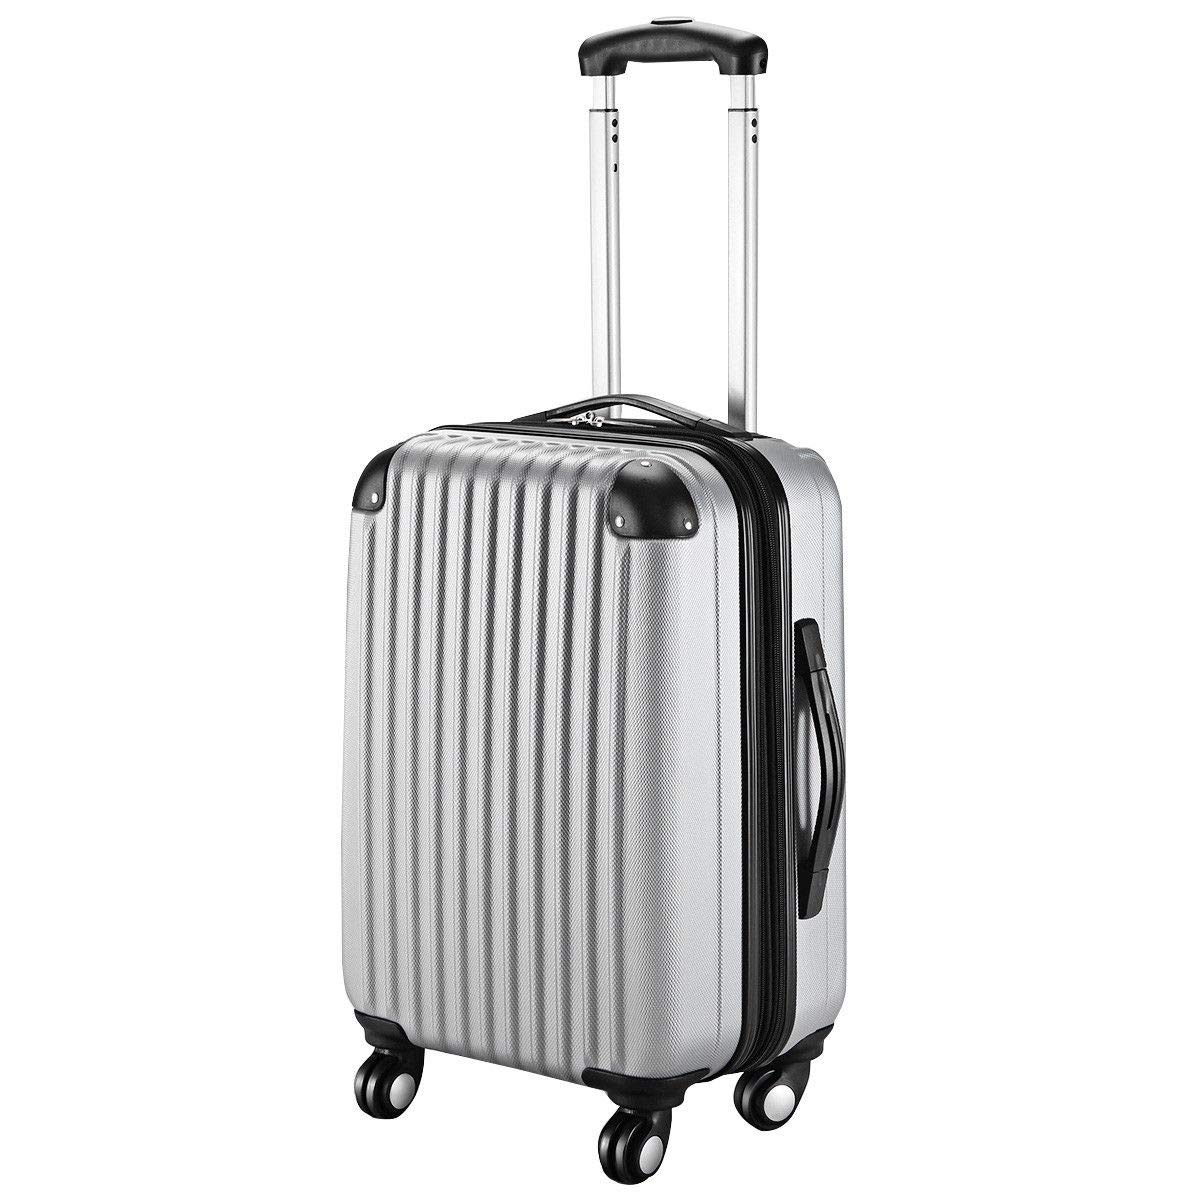 Goplus 20'' ABS Carry On Luggage Expandable Hardside Travel Bag Trolley Rolling Suitcase GLOBALWAY (Grey)